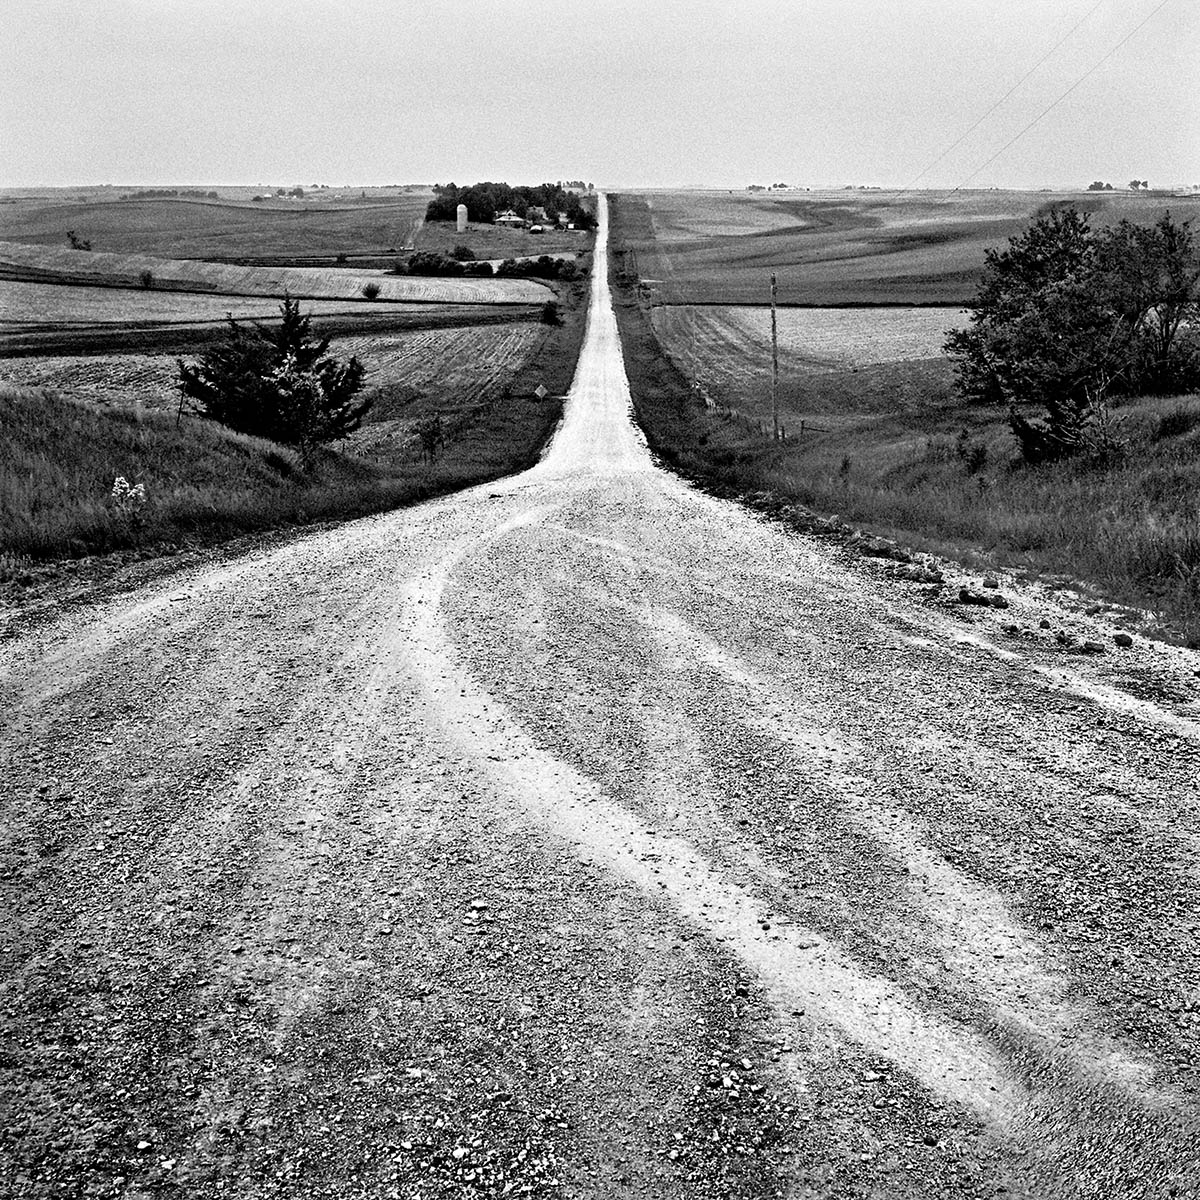 Country Road off I-80, Iowa, 1997